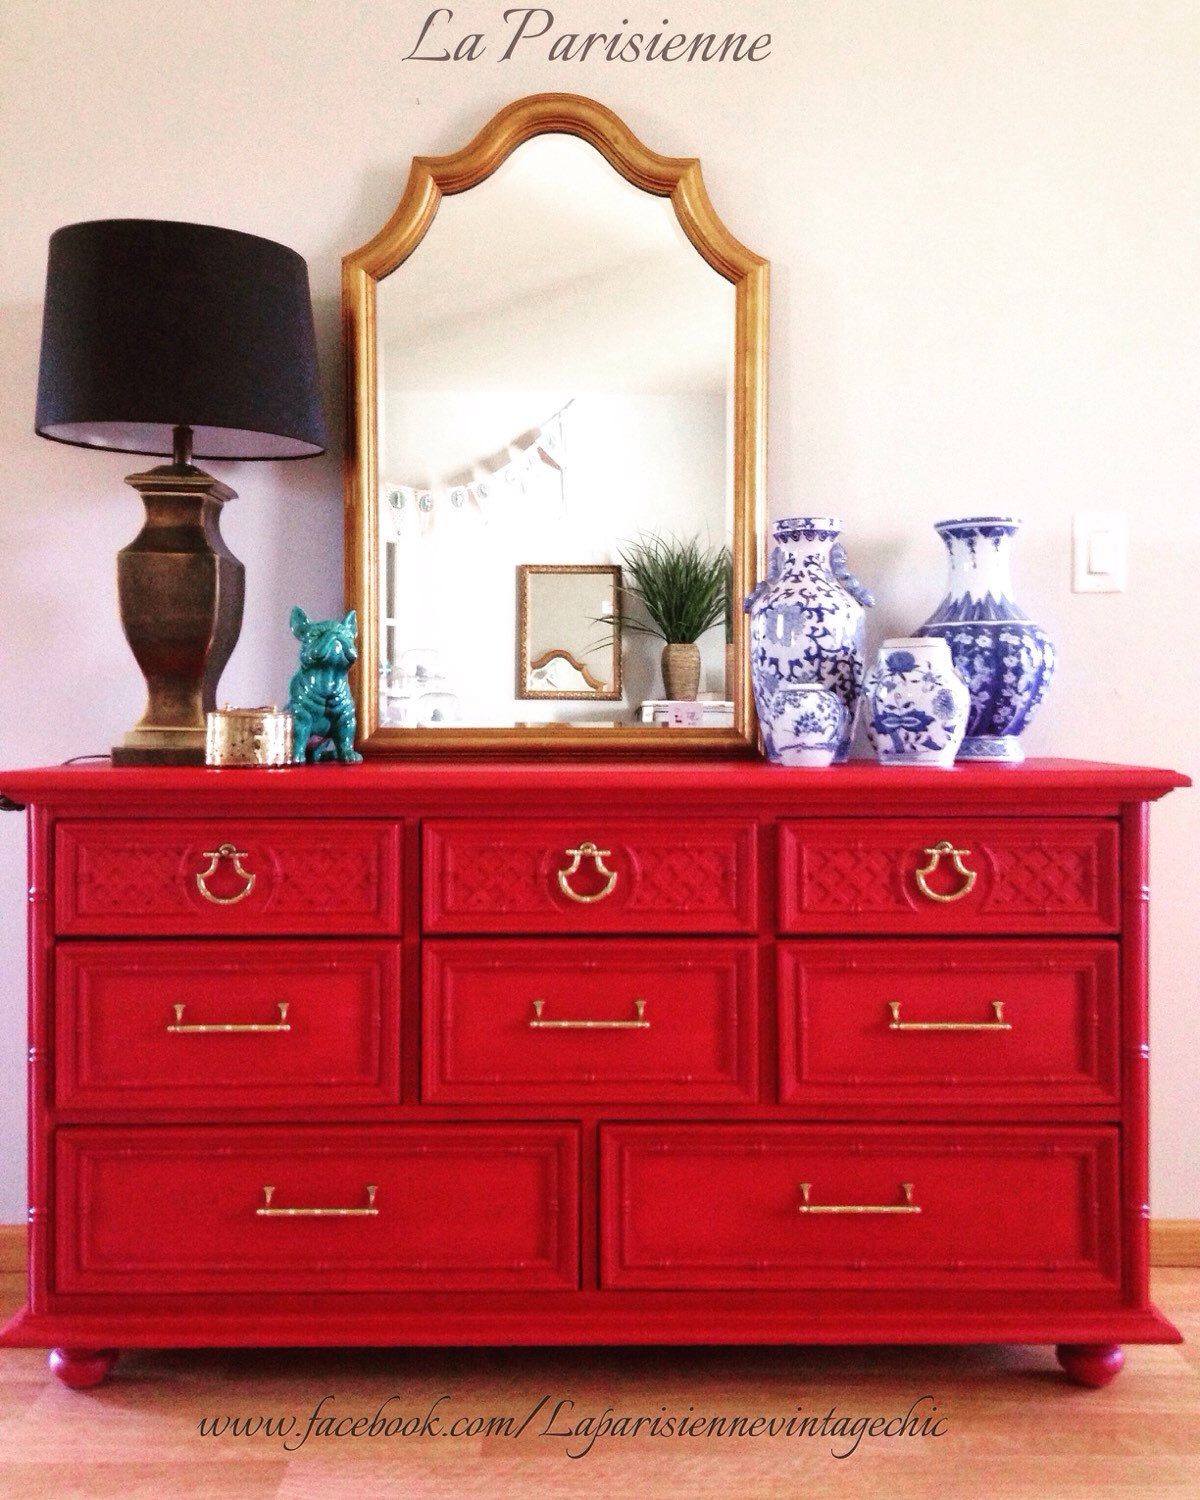 Etsy Vintage Bamboo Furniture: SOLD Red Dresser, Vintage Dresser, Asian Inspired Dresser